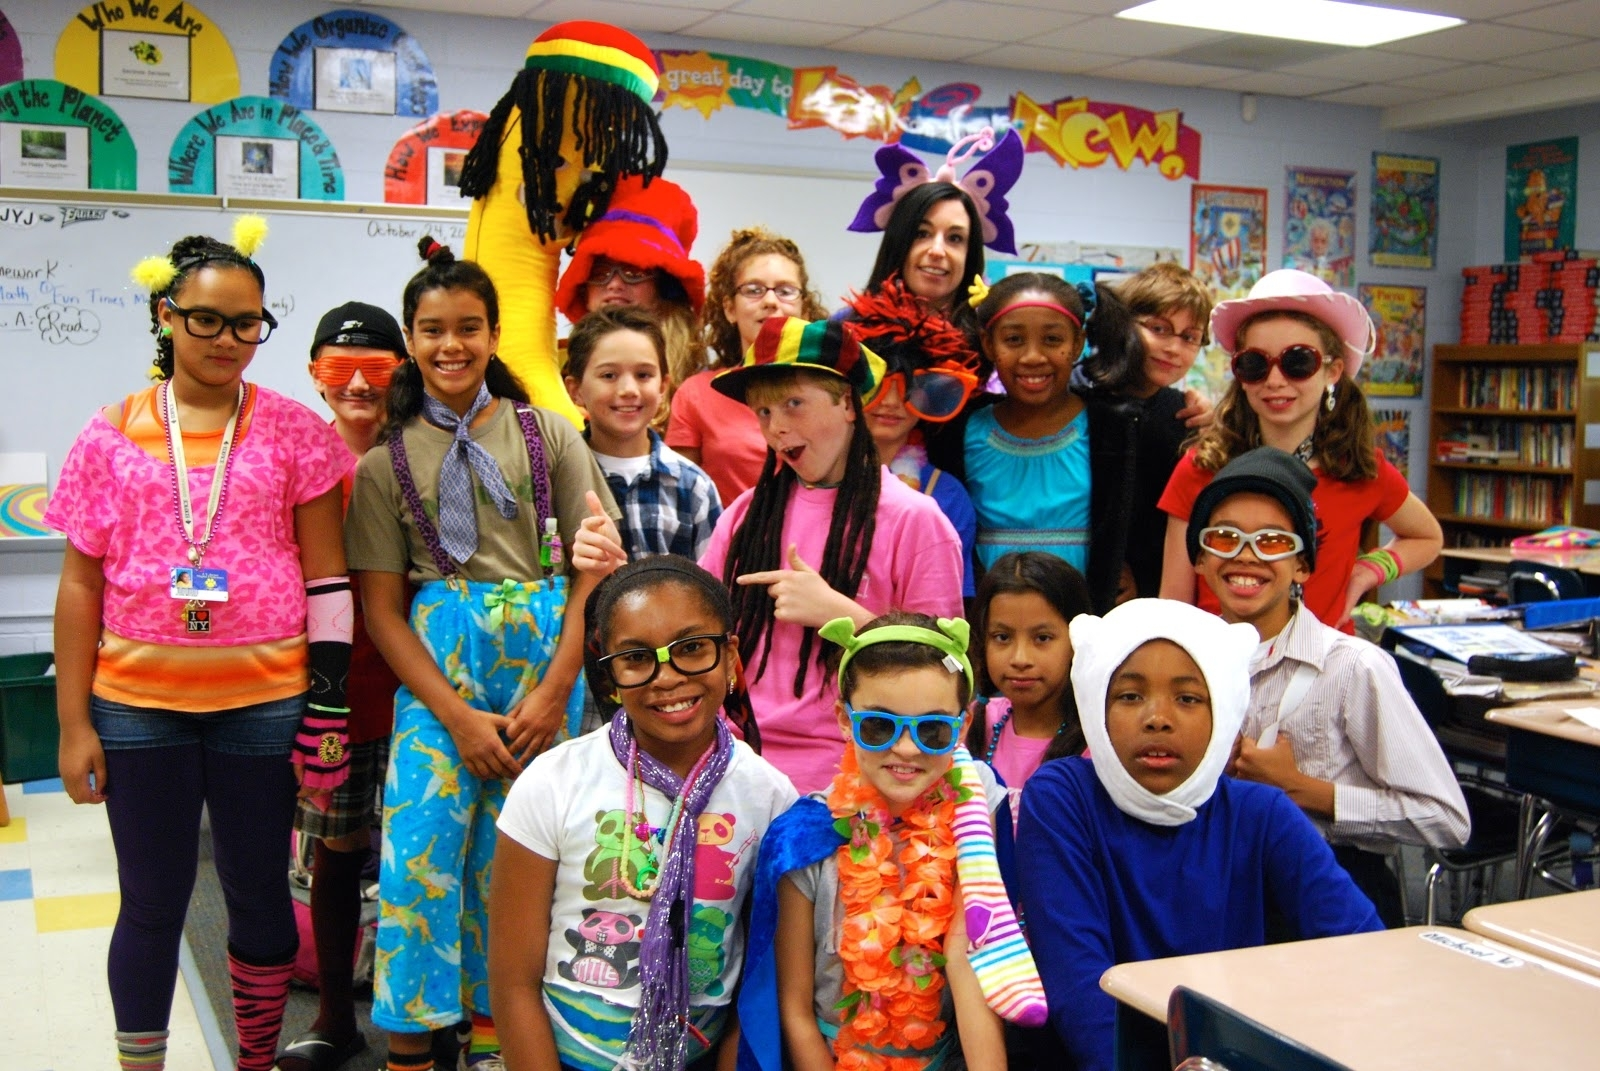 10 Attractive Ideas For Wacky Tacky Day %name 2020